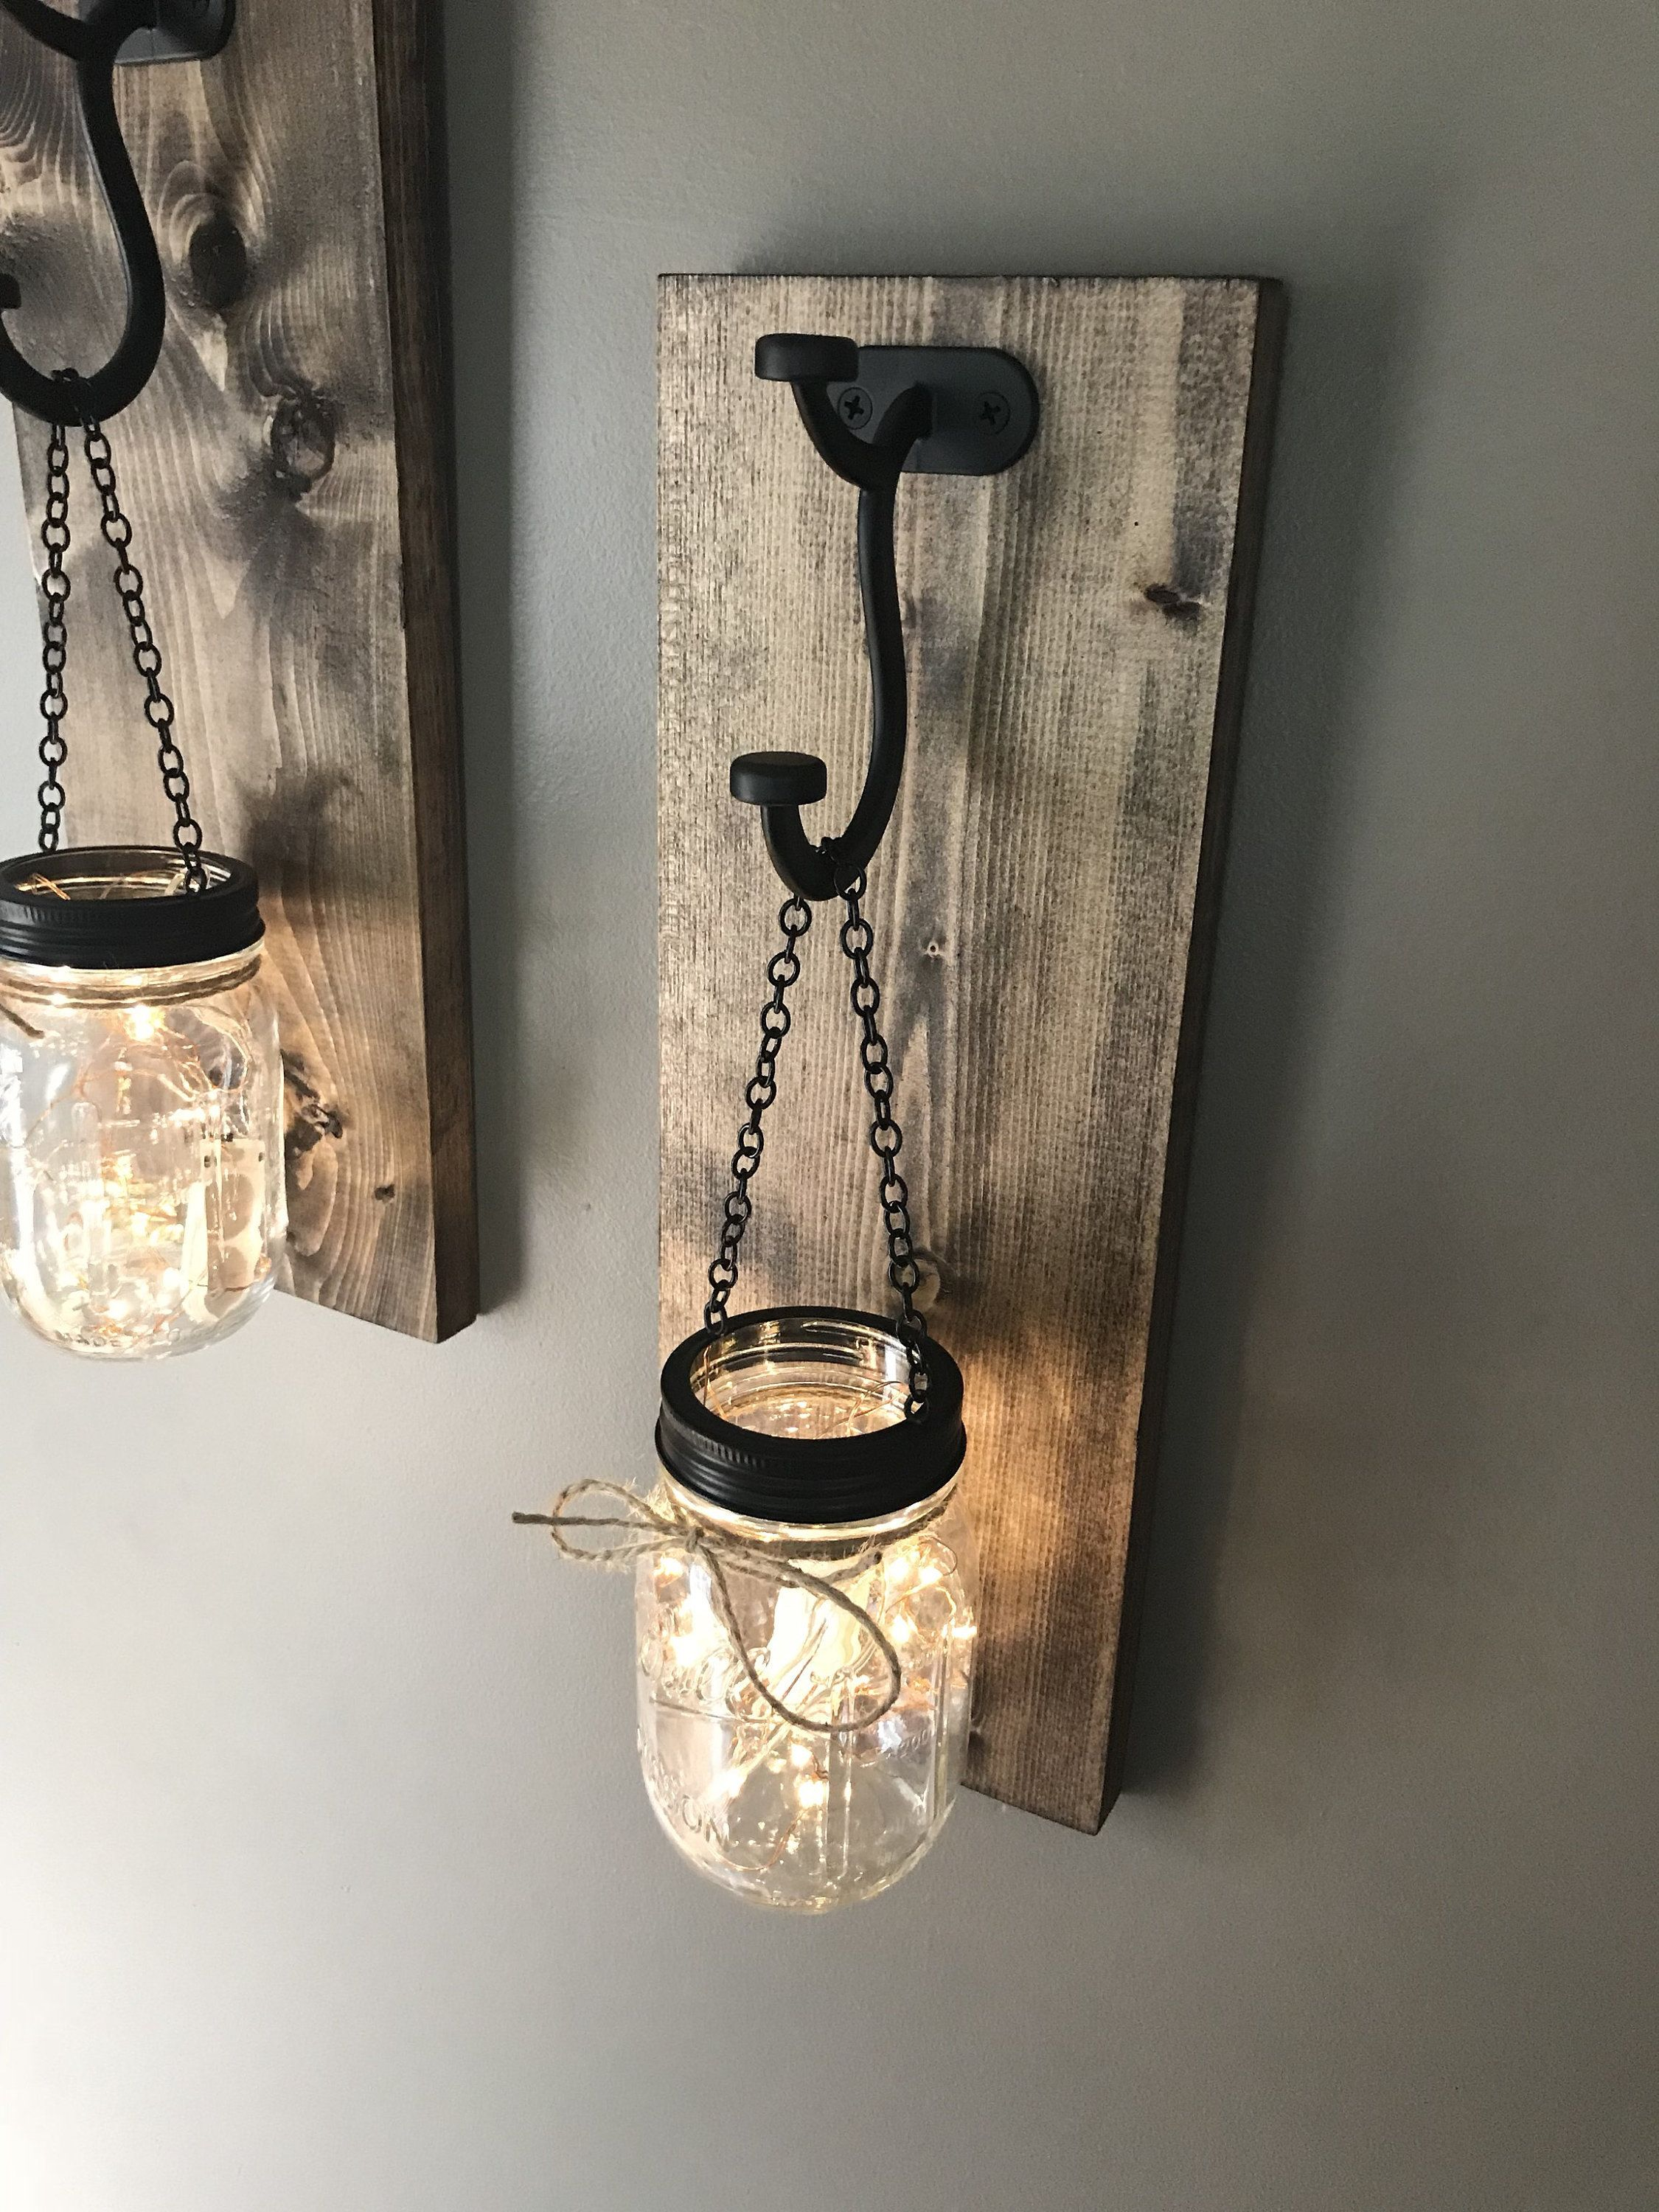 Hanging mason jar wall sconce | set of 2 mason jar sconce with lights | light up mason jar wall sconce | light up wall sconce set #weddingmenuideas